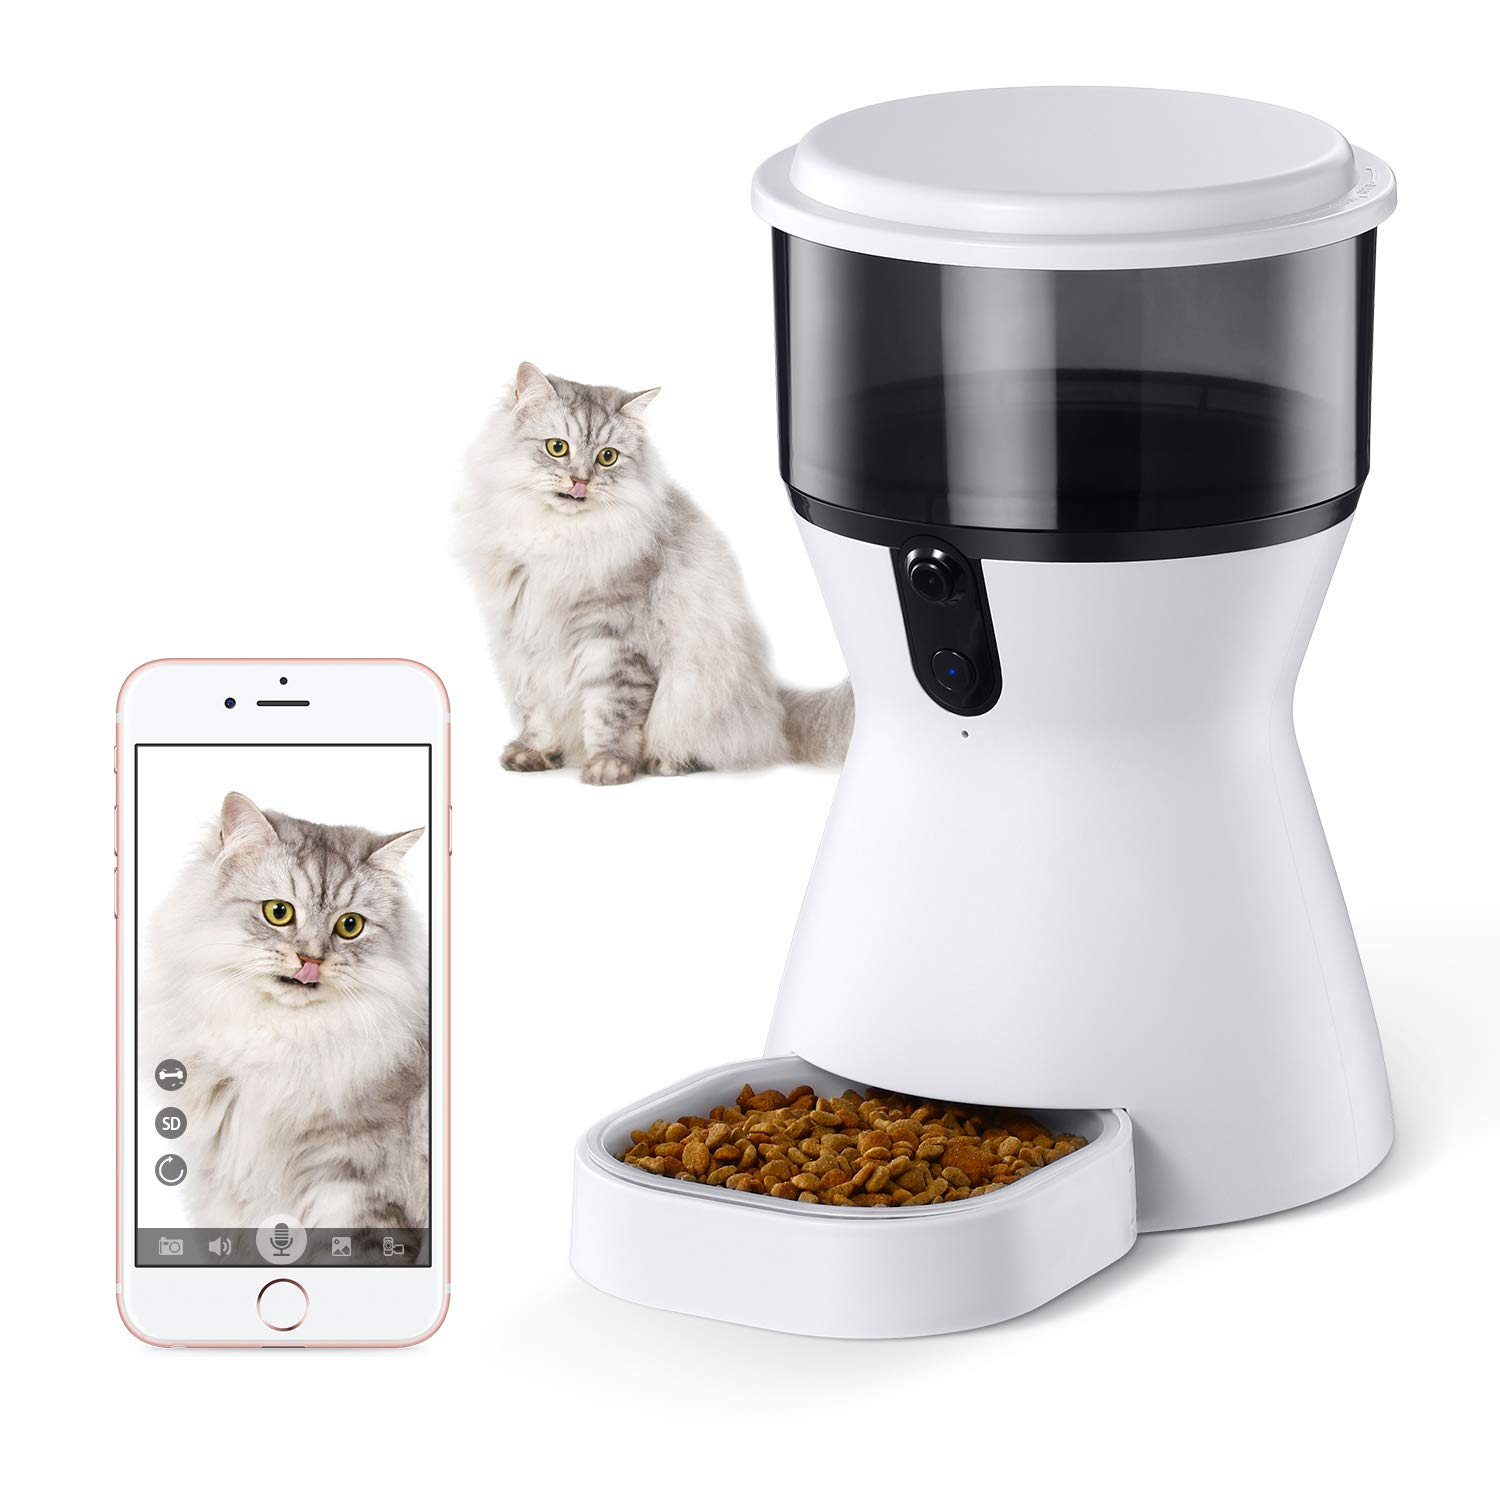 isYoung 4L Smart Pet Feeder, Automatic Wi-Fi Pet Feeder with HD Camera for Video and 2-Way Audio Communication for Cats and Dogs - App for Android and iOS by isYoung